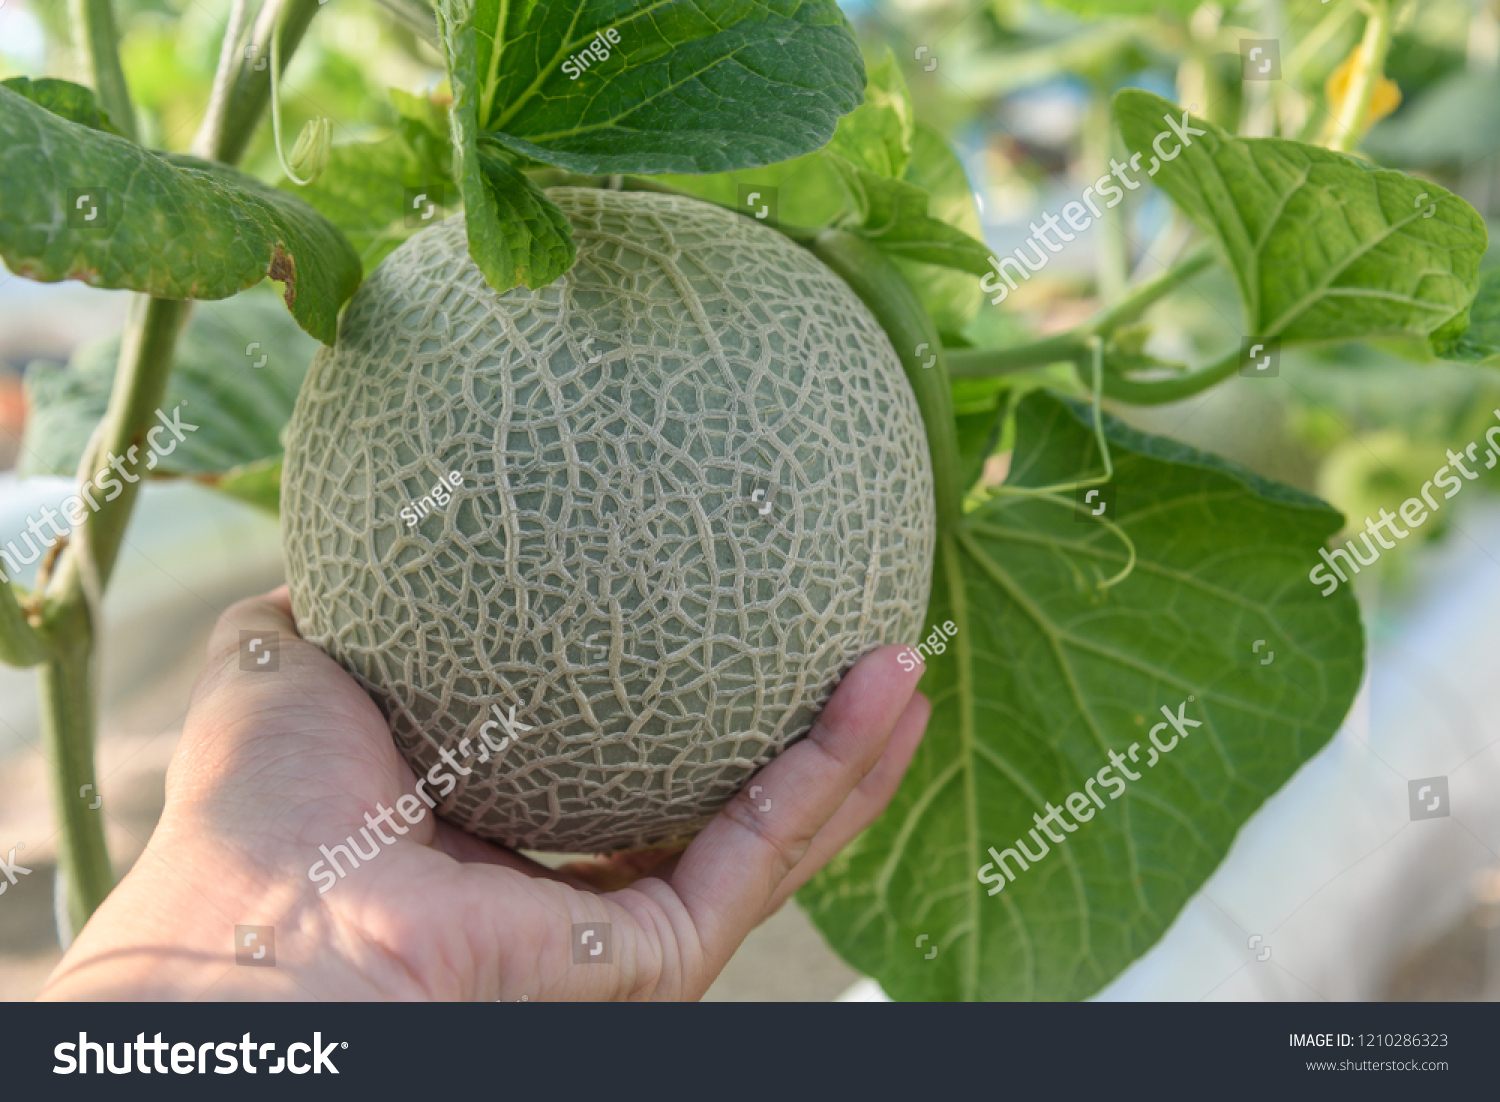 Hand Holding Melons Green Melons Cantaloupe Stock Photo Edit Now 1210286323 Cantaloupes require heat and no environmental stress to produce sweet fruit. shutterstock